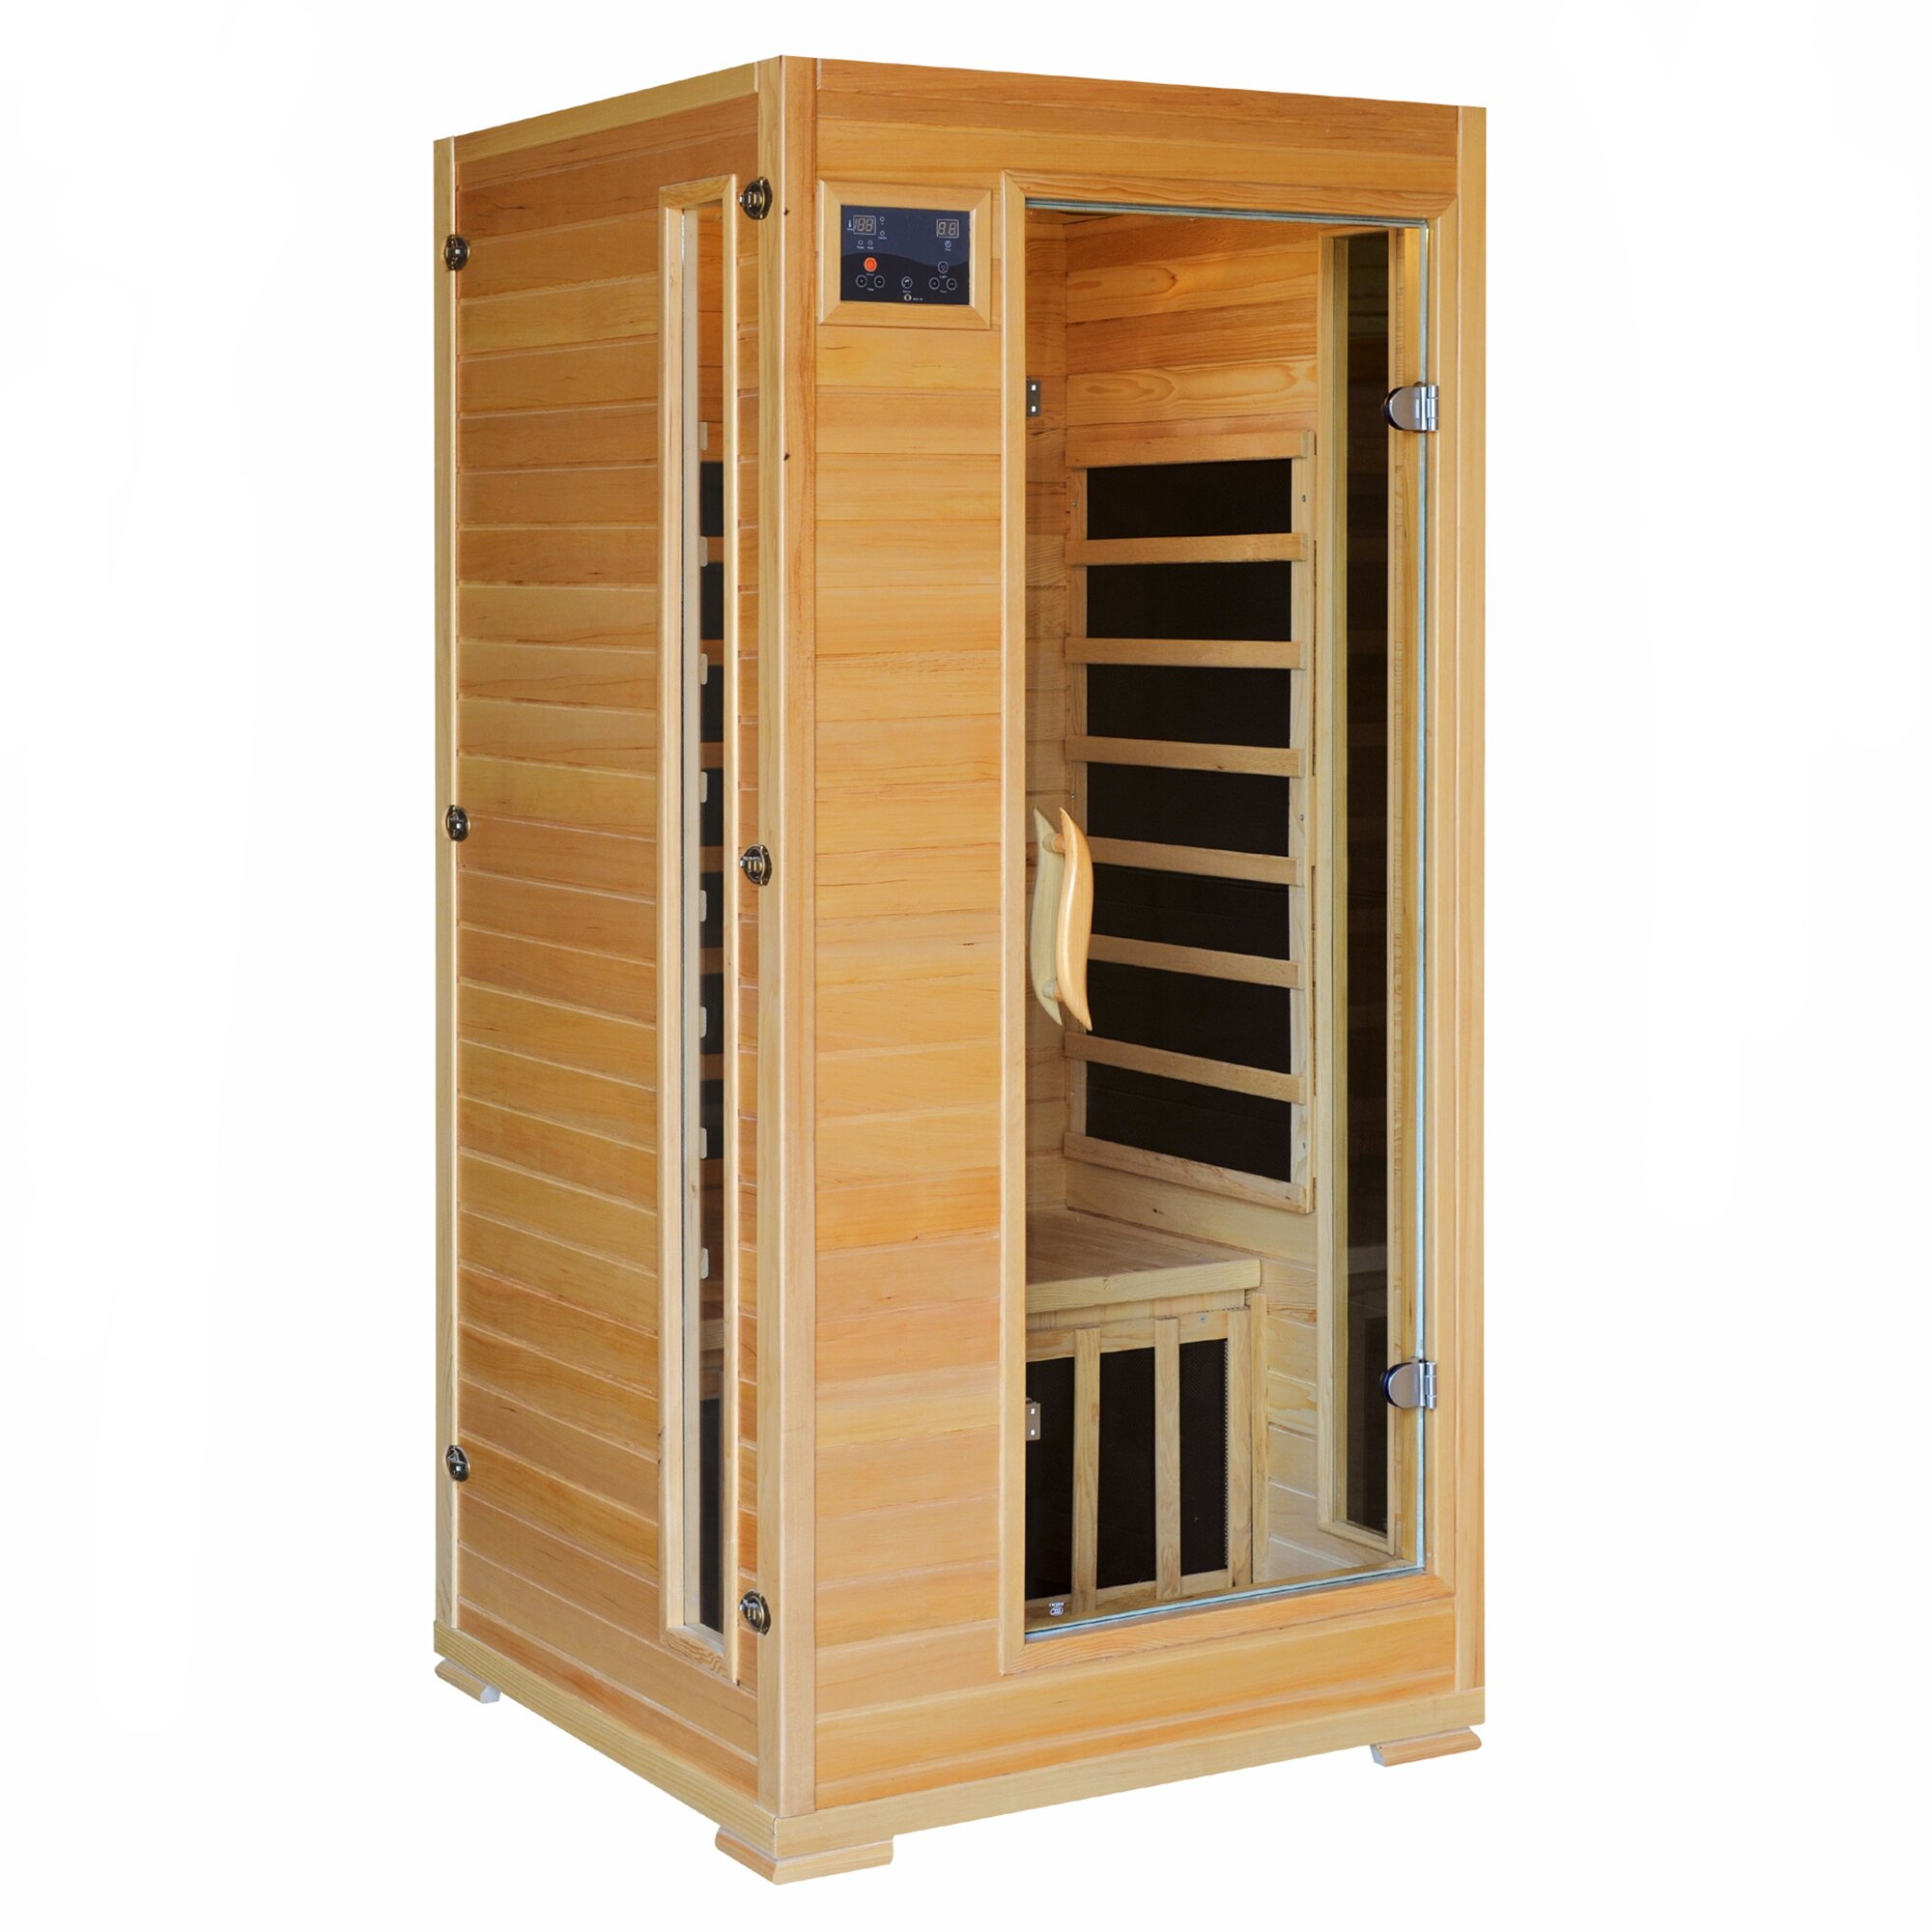 radiant saunas 1 2 person hemlock infrared sauna with 4 carbon heaters reviews wayfair. Black Bedroom Furniture Sets. Home Design Ideas